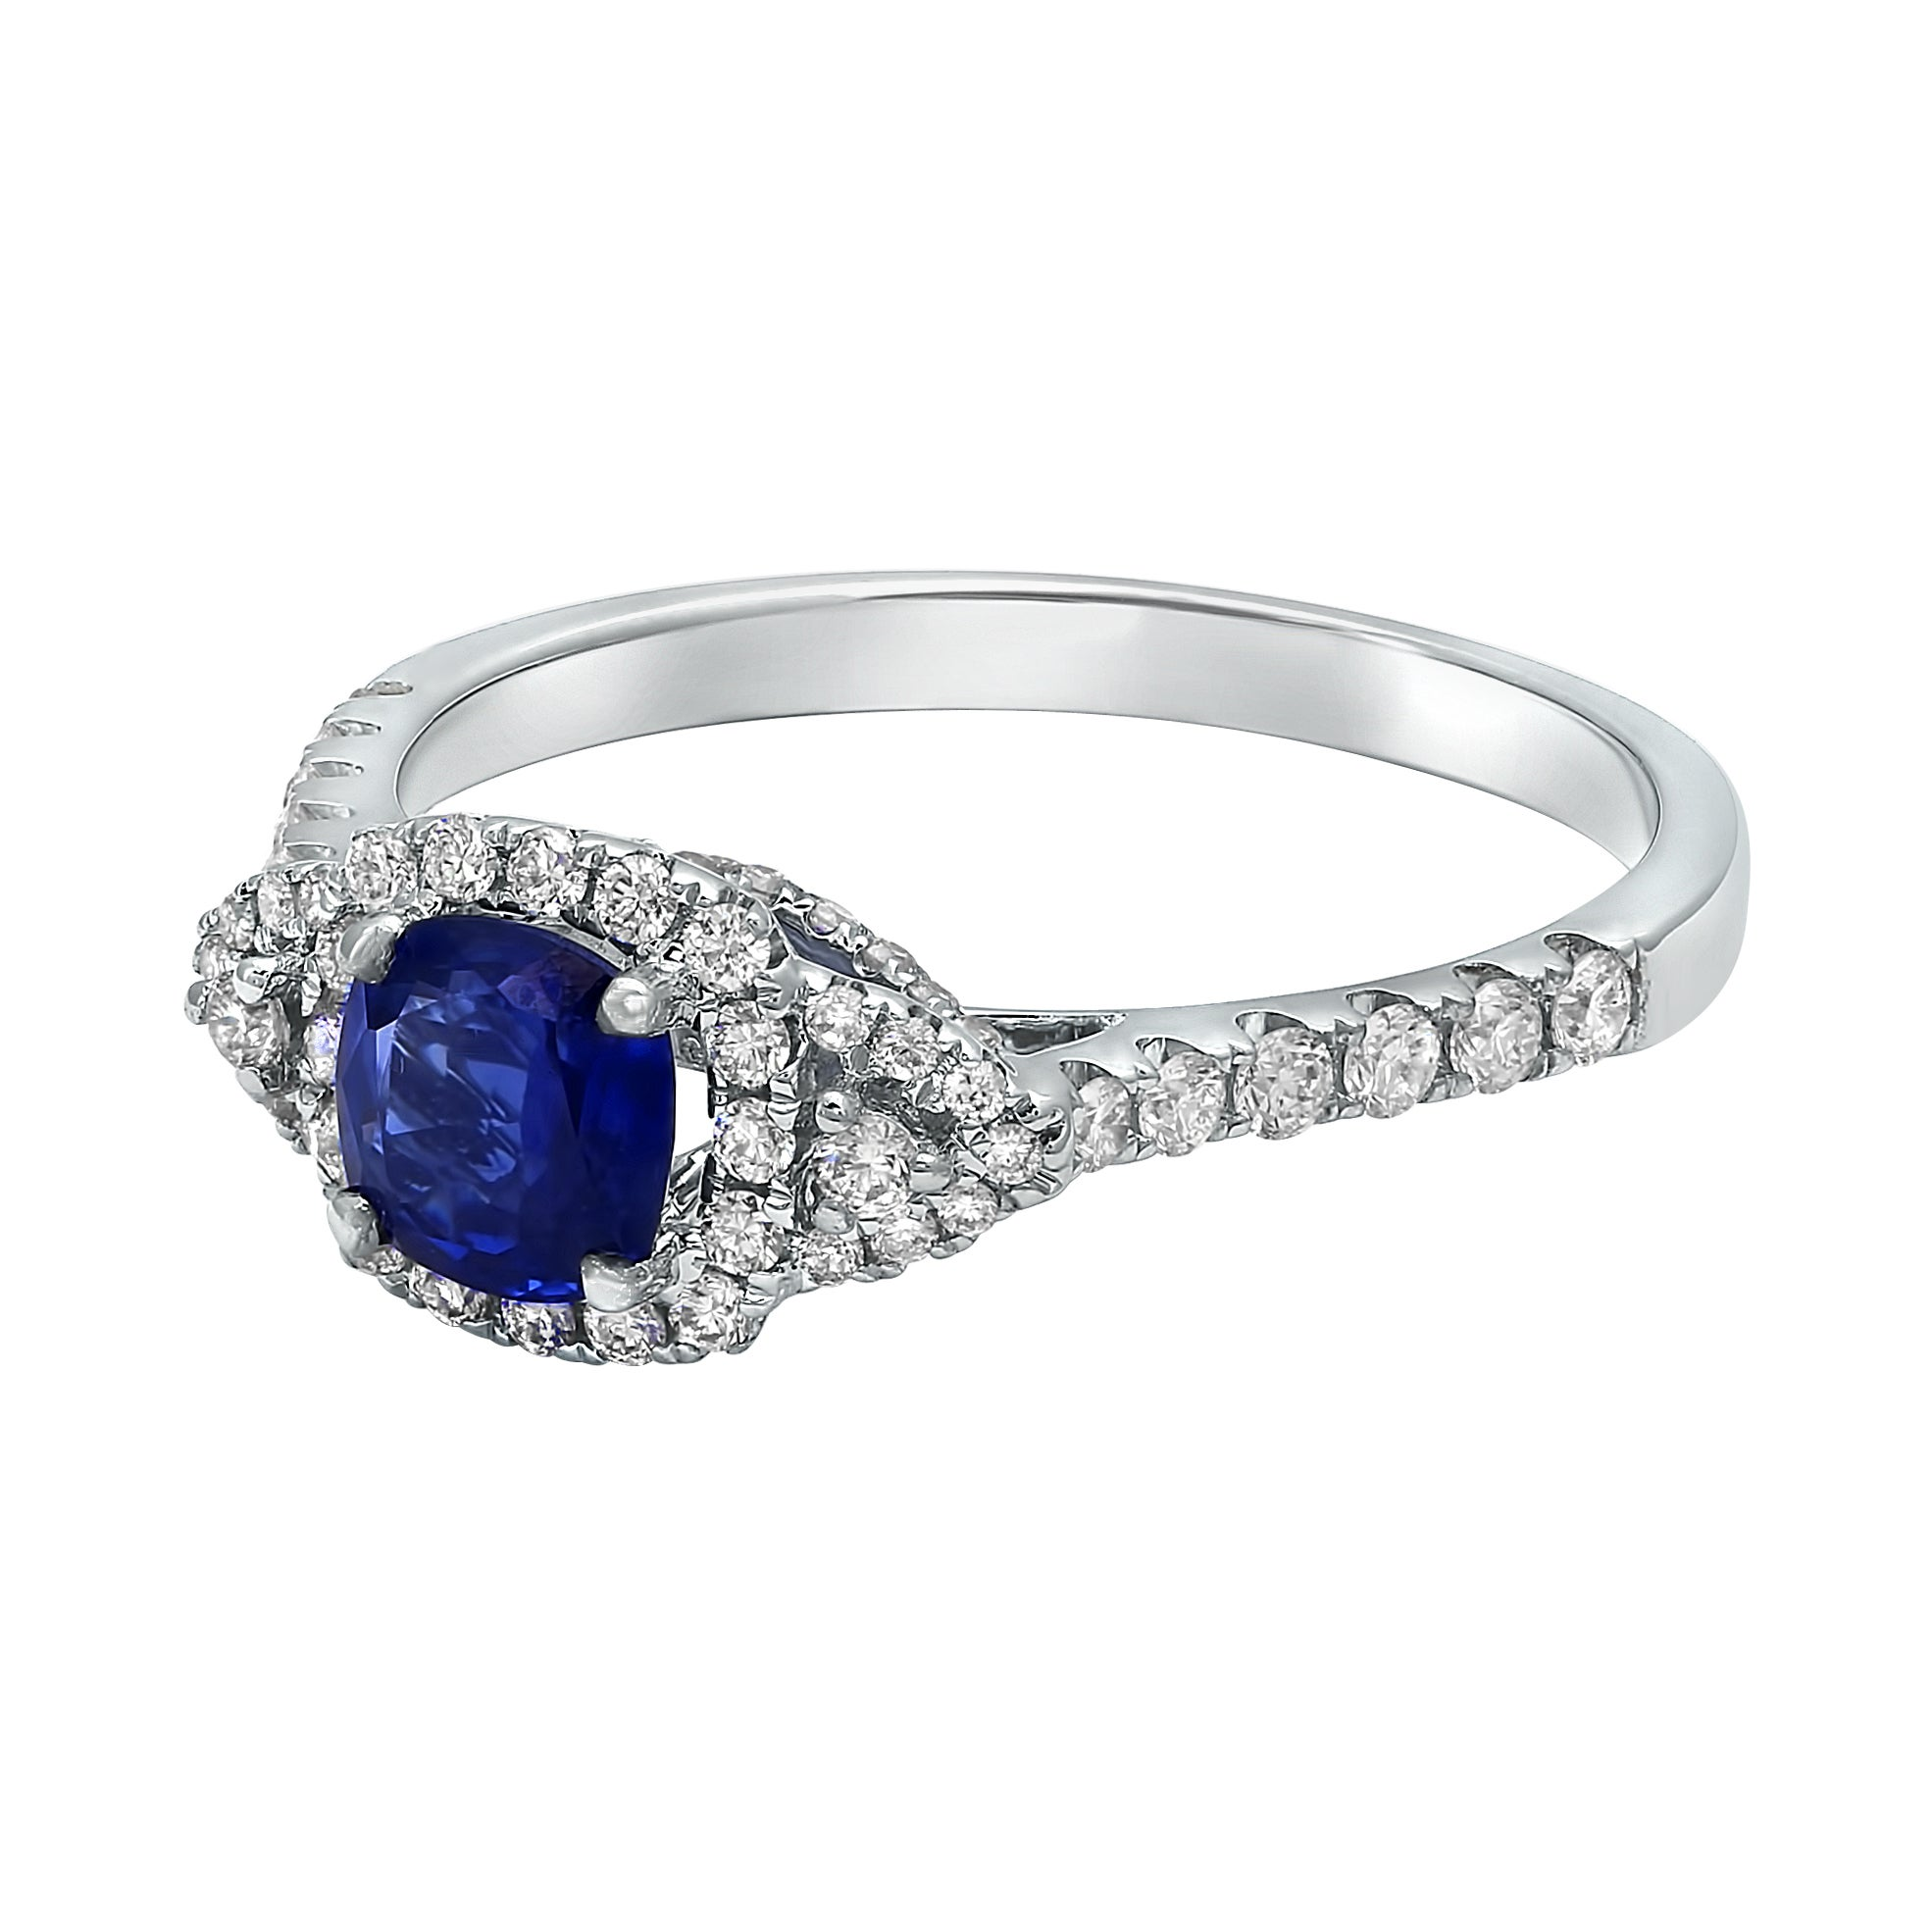 diamond full white her diamonds wal tangelo wedding rings for anniversary used michael inexpensive gold created cubic hill silver ring moissanite com with tanzanite sapphire emerald carat size and blue semi engagement sterling of jewellery eternity cut affordable zirconia yellow